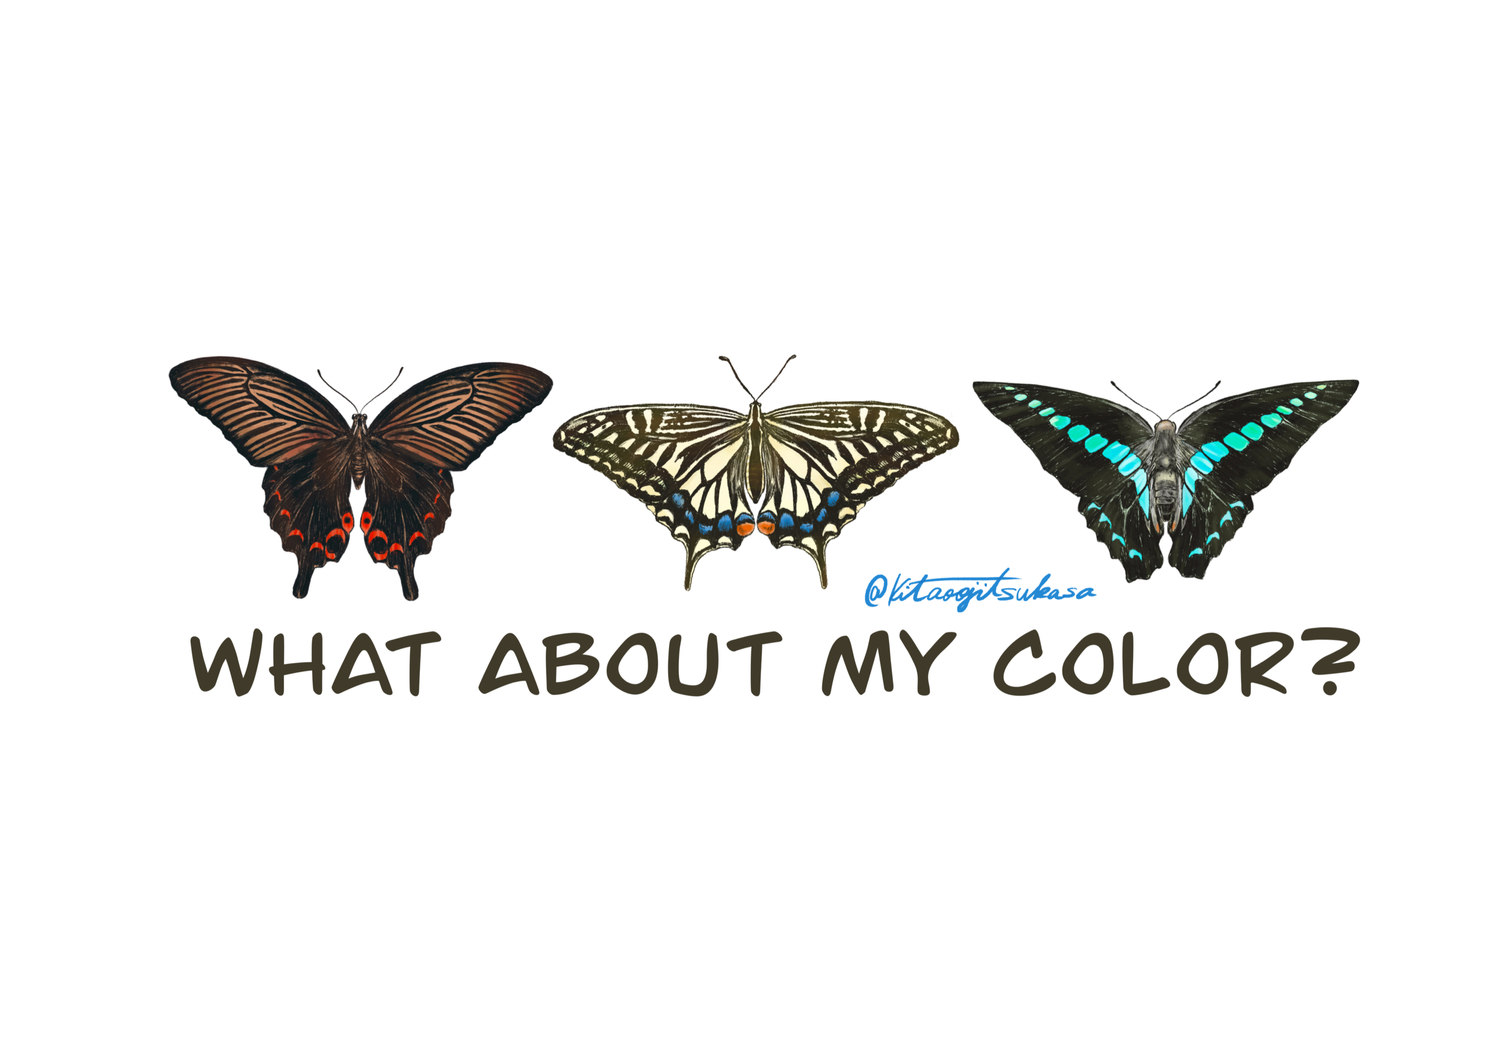 WHAT ABOUT MY COLOR?シリーズ